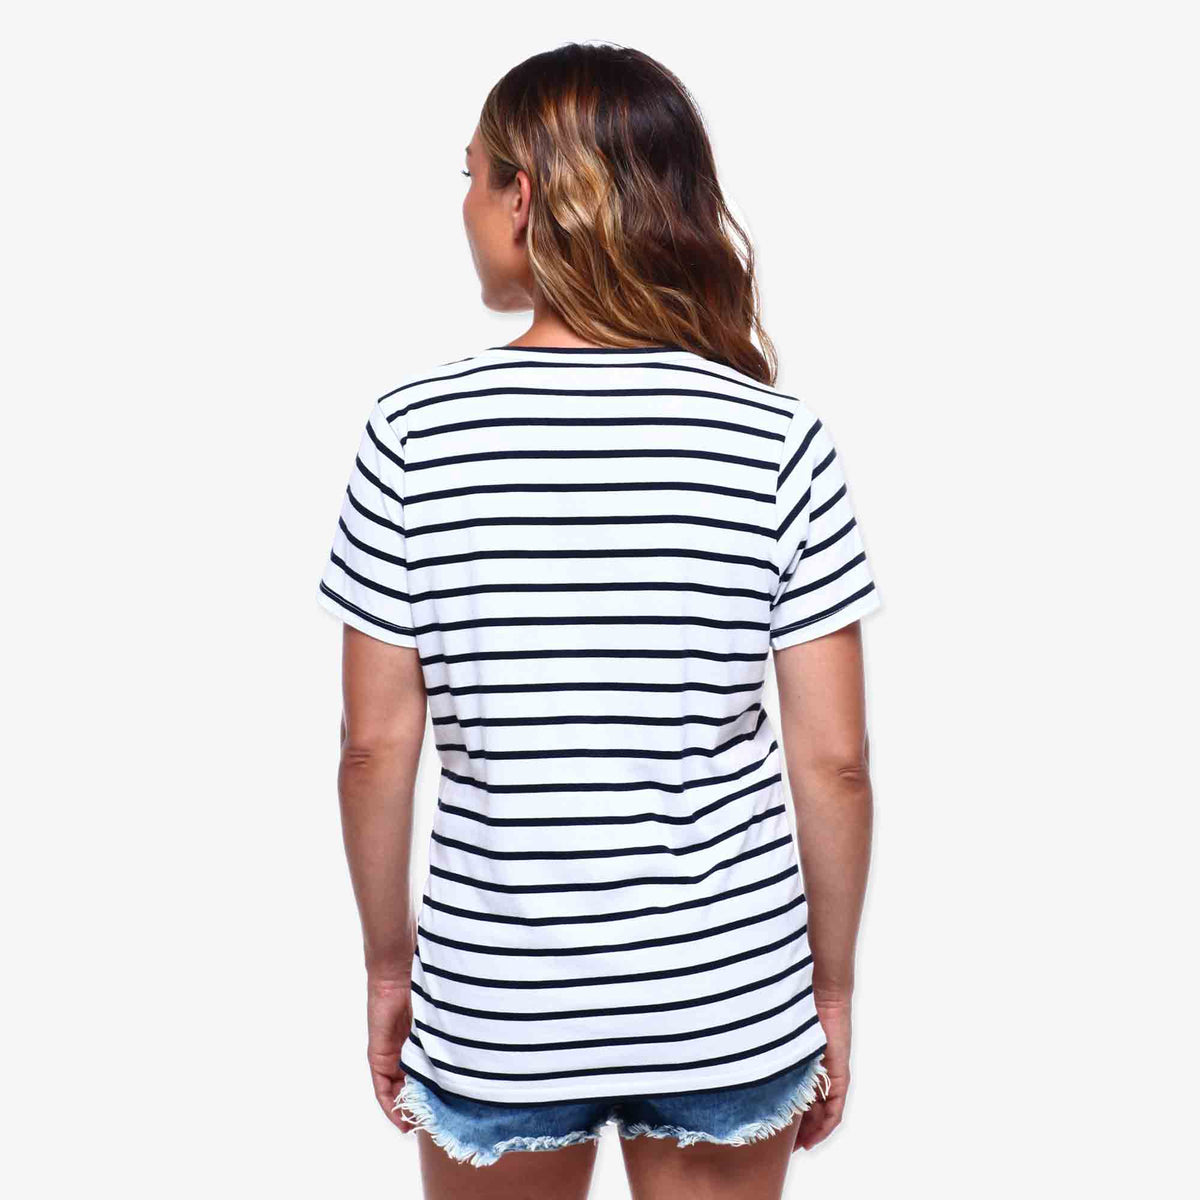 Mariner Stripe Tee - White & Navy